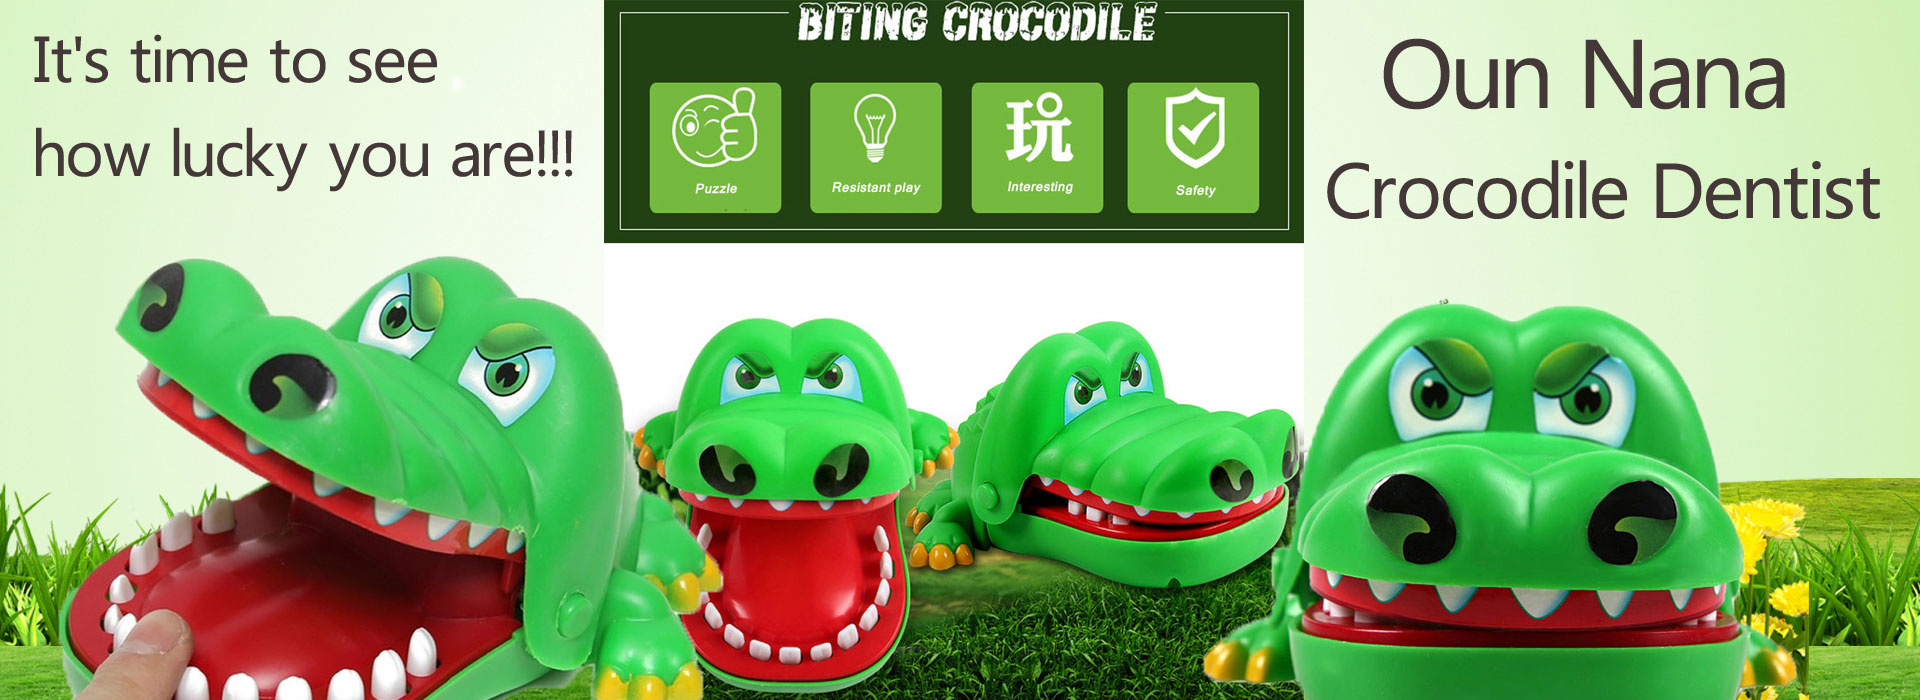 Oun Nana Crocodile Dentist, Crocodile Biting Finger Game Funny Toy Gift Funny Toys For Kids, 1 To 4 Players, Ages 4 And Up